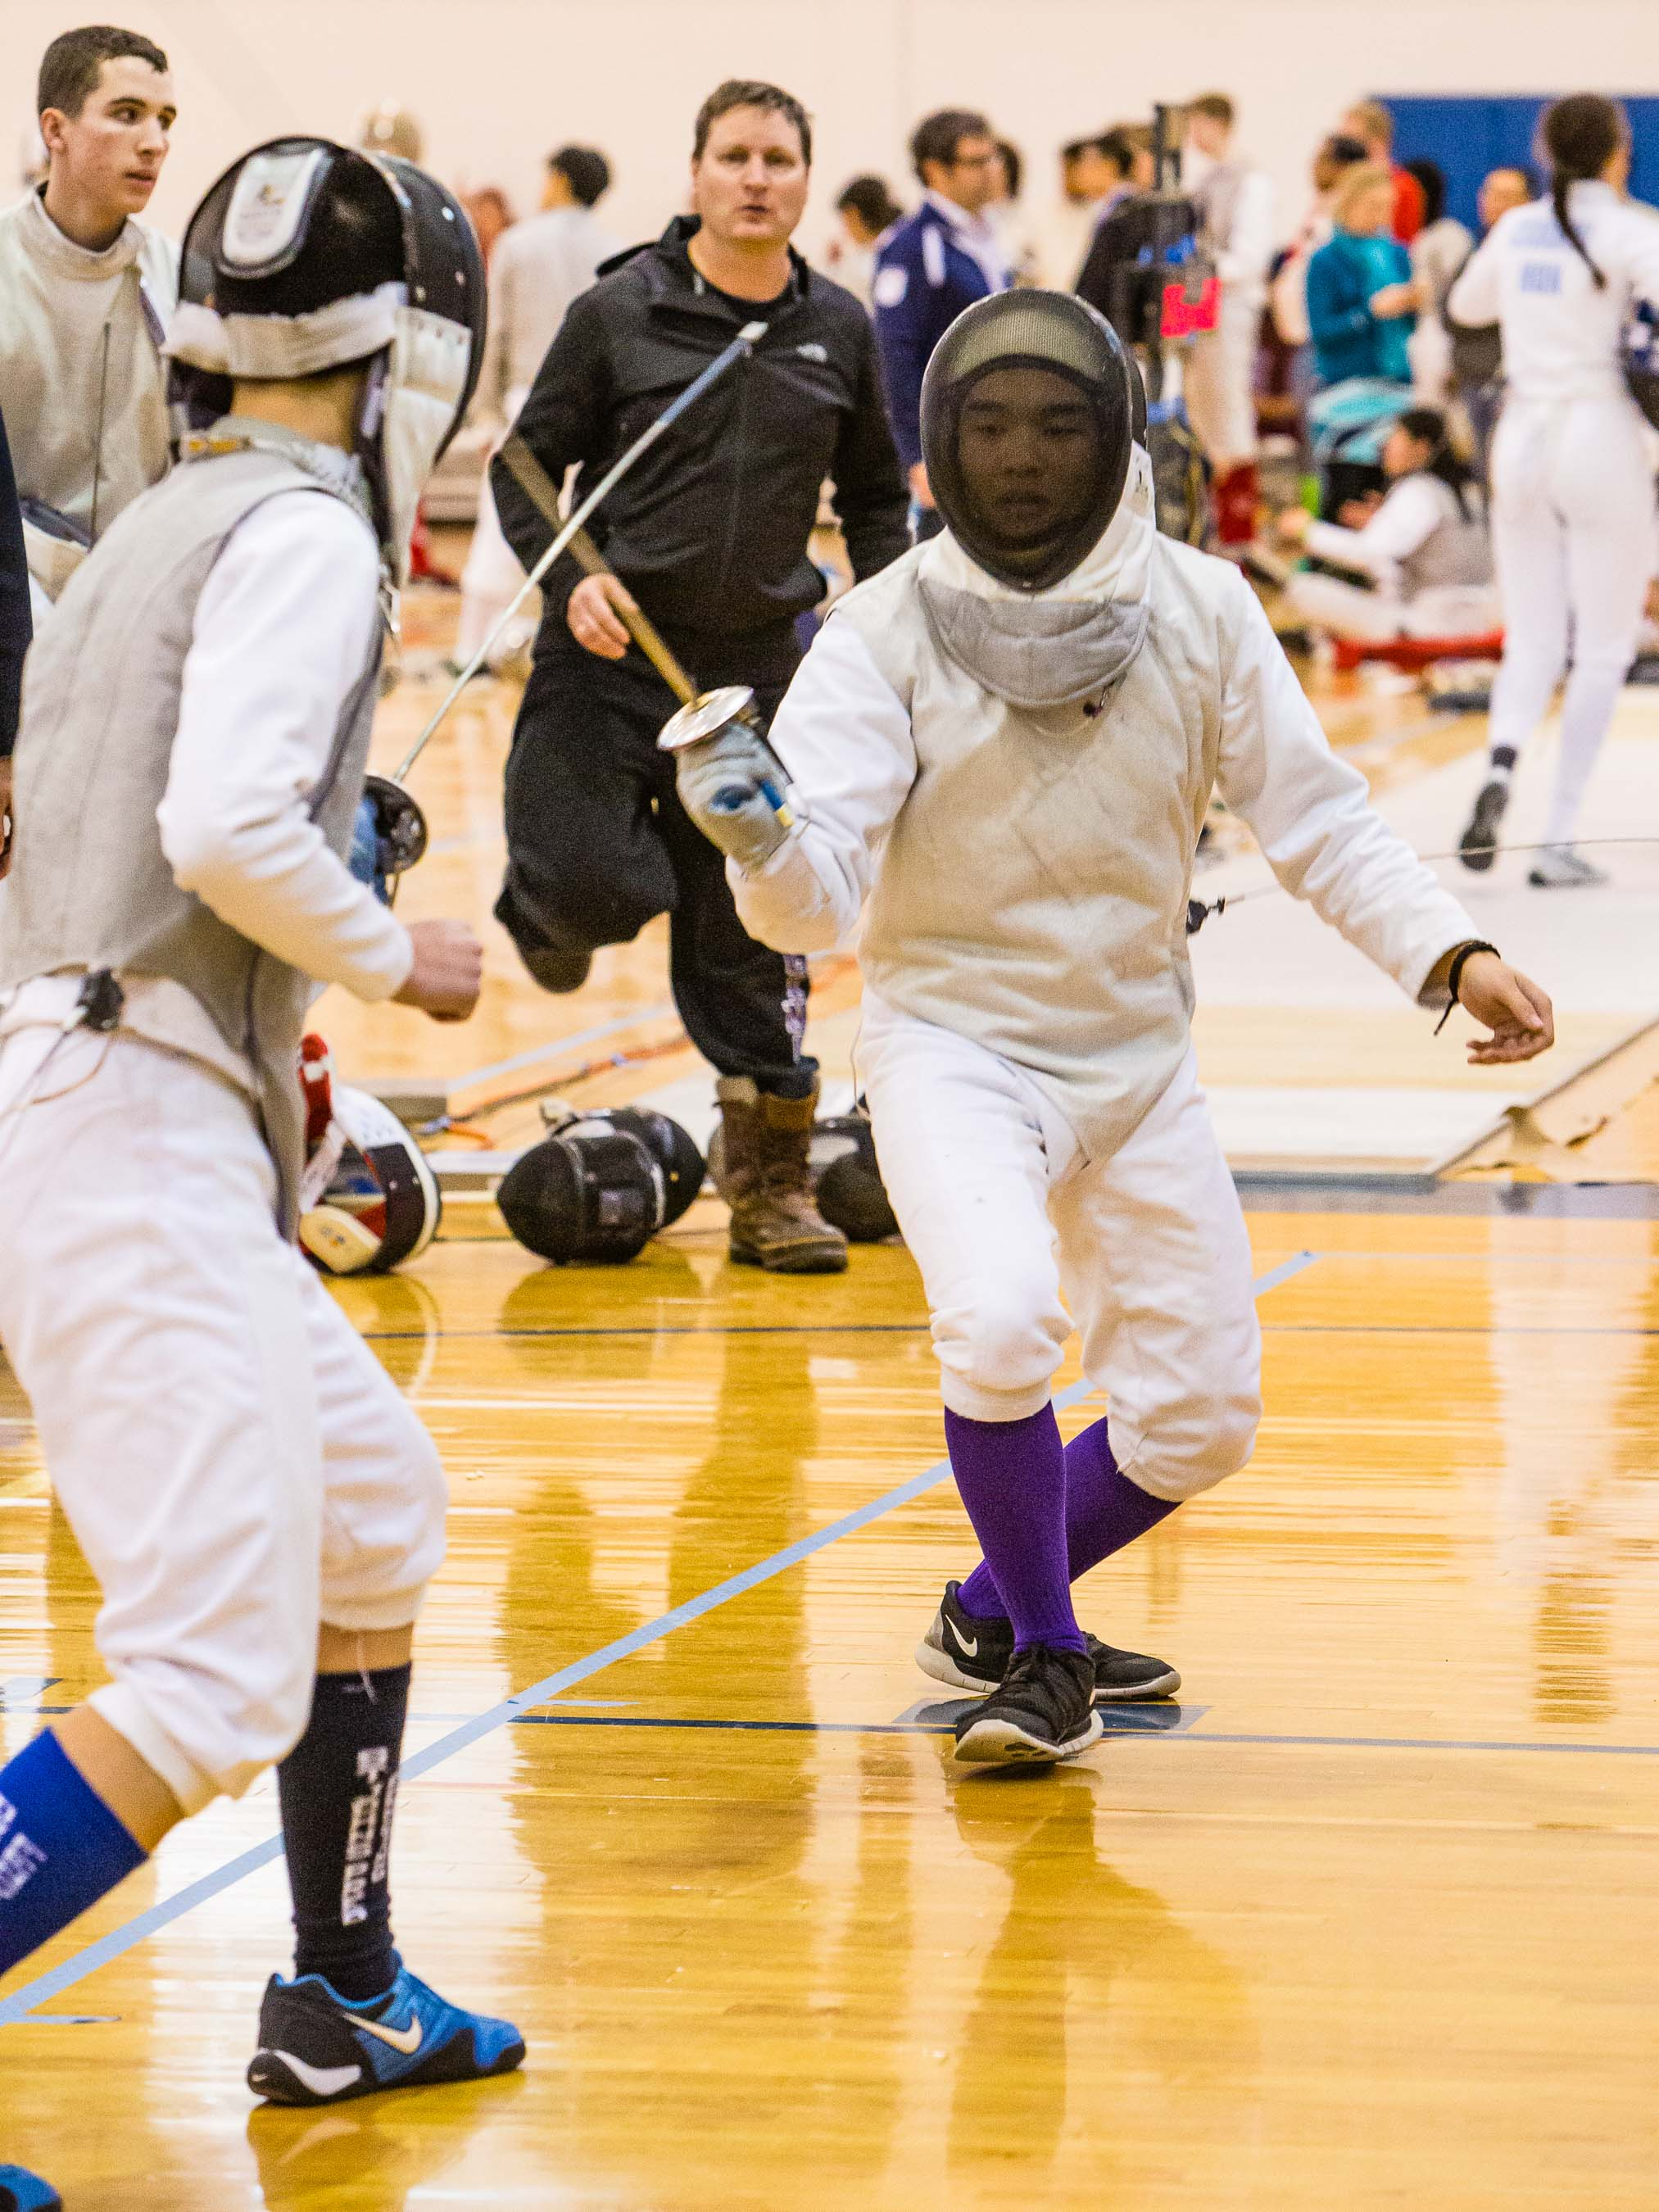 High school épée fencers